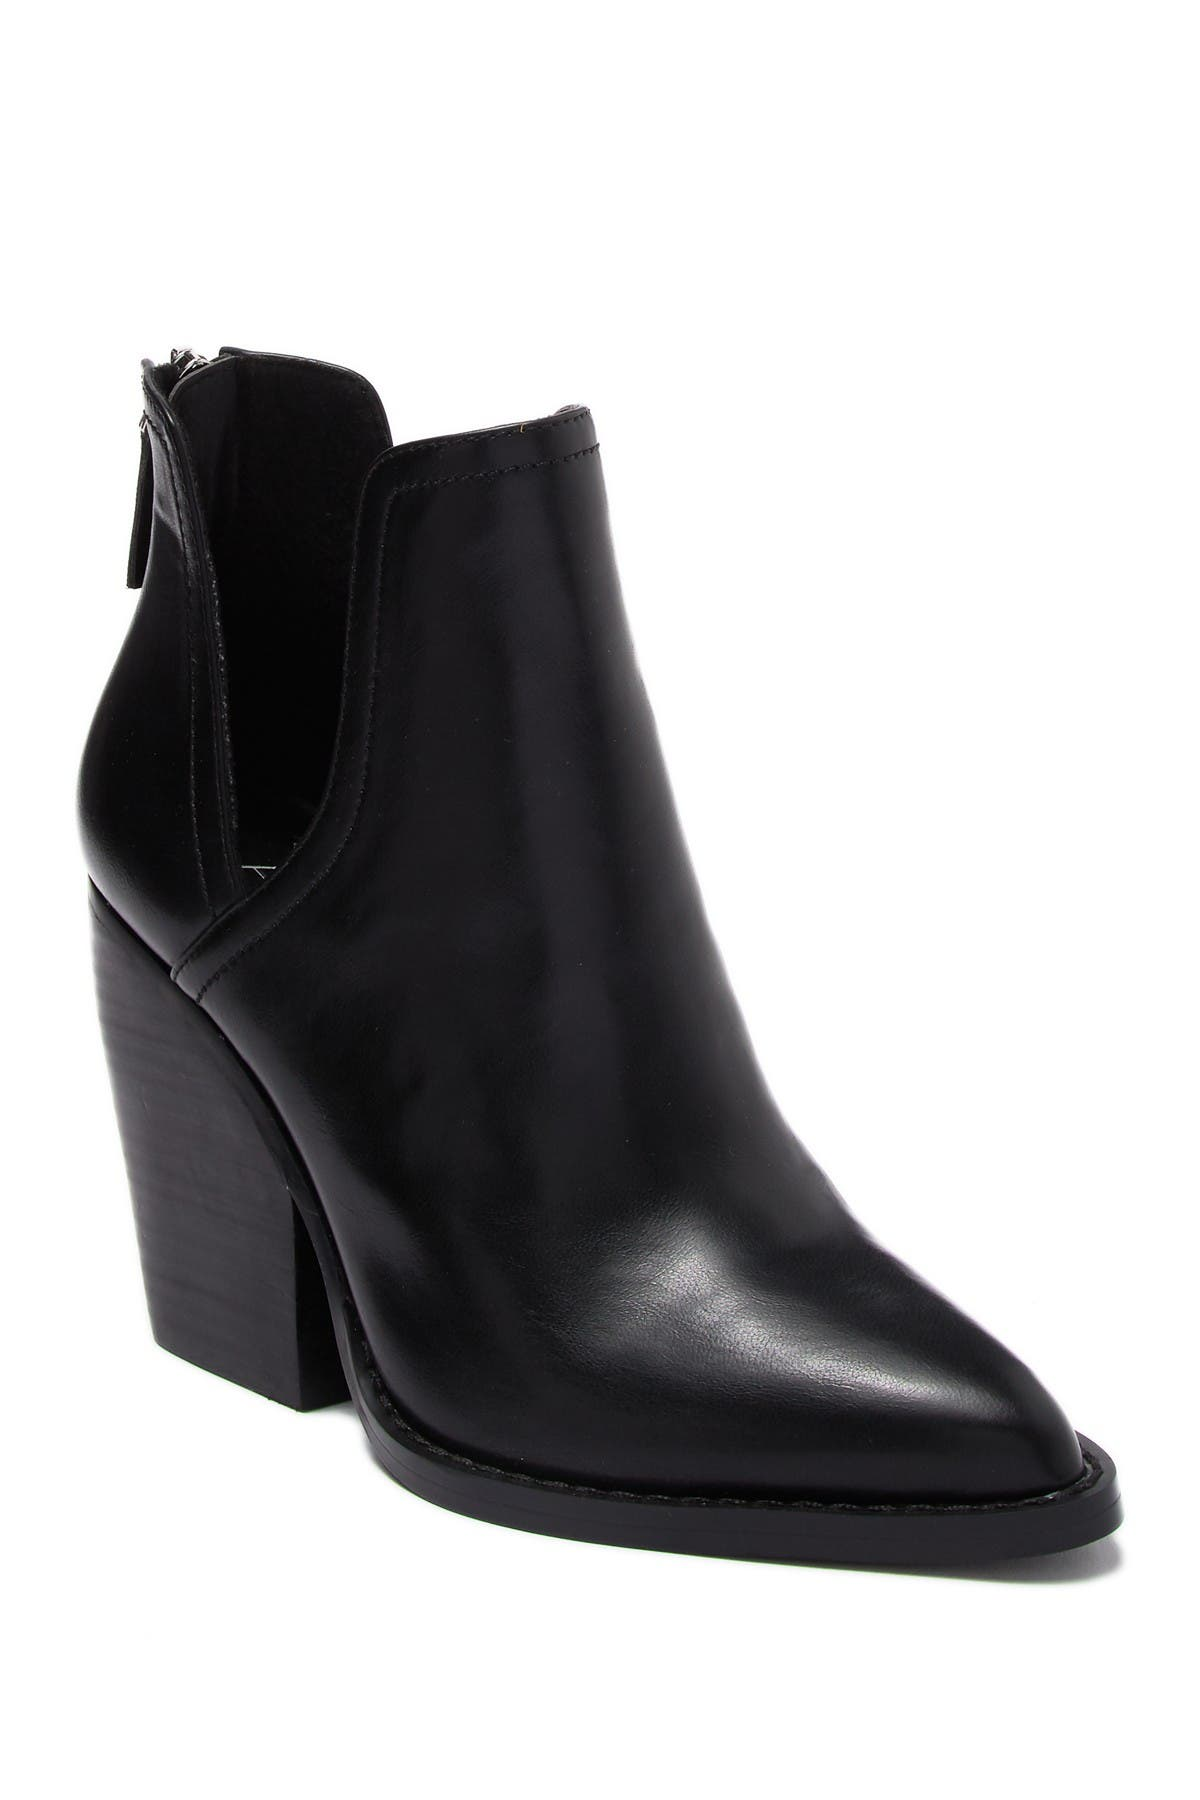 Abound   Kayla Ankle Boot   Nordstrom Rack